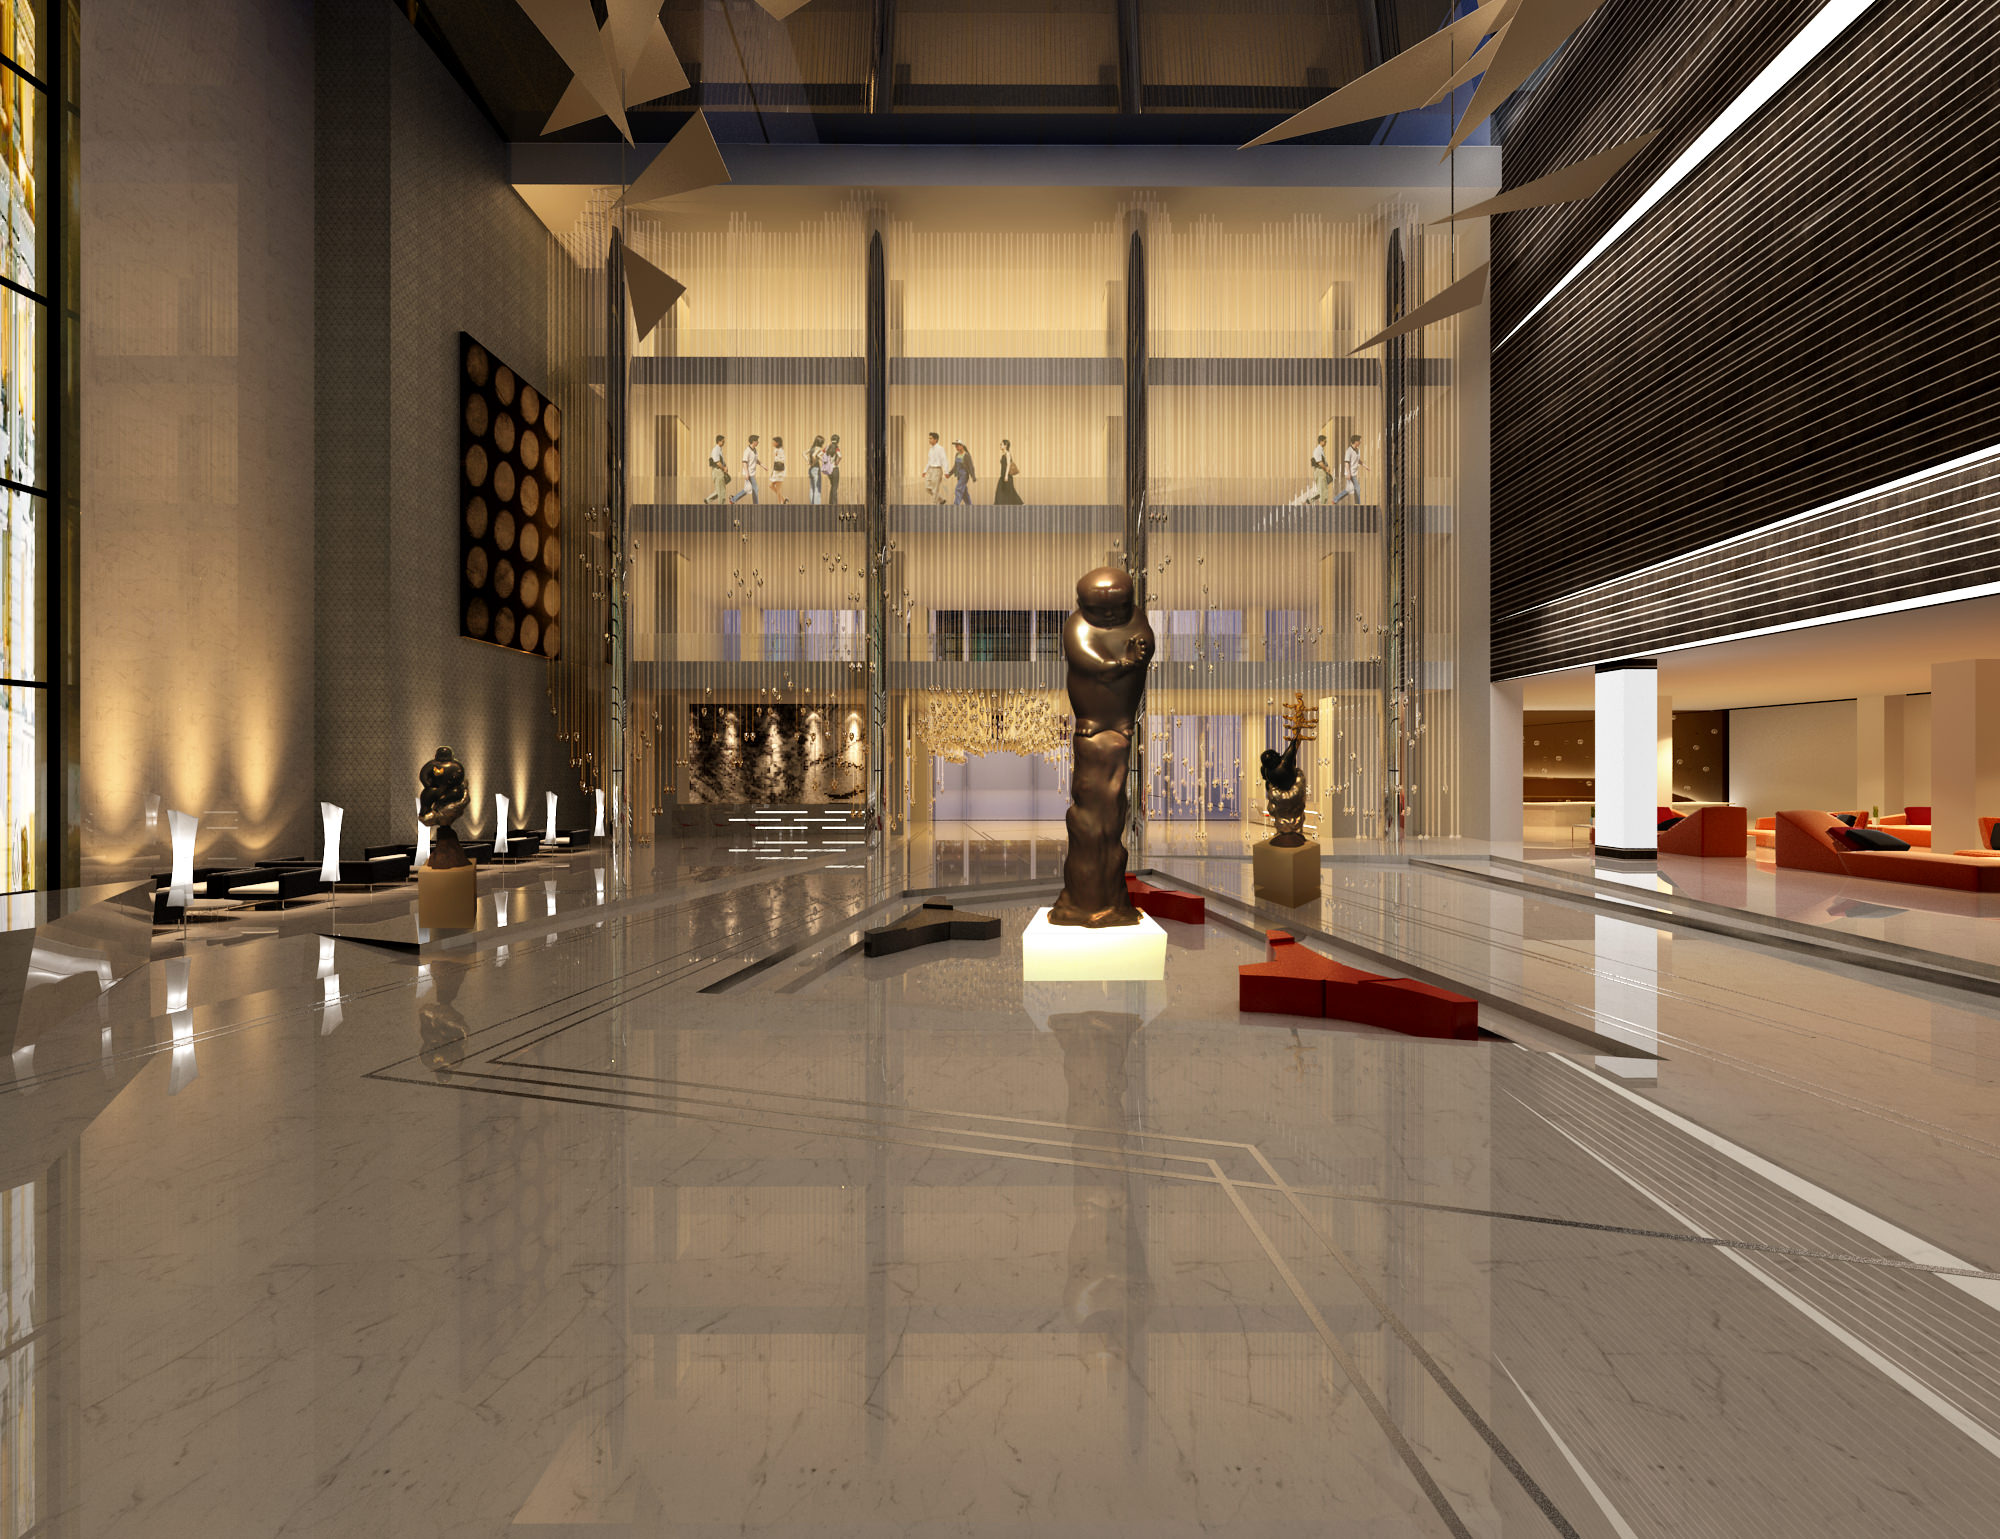 Lobby with Exotic Sculpture | 3D model